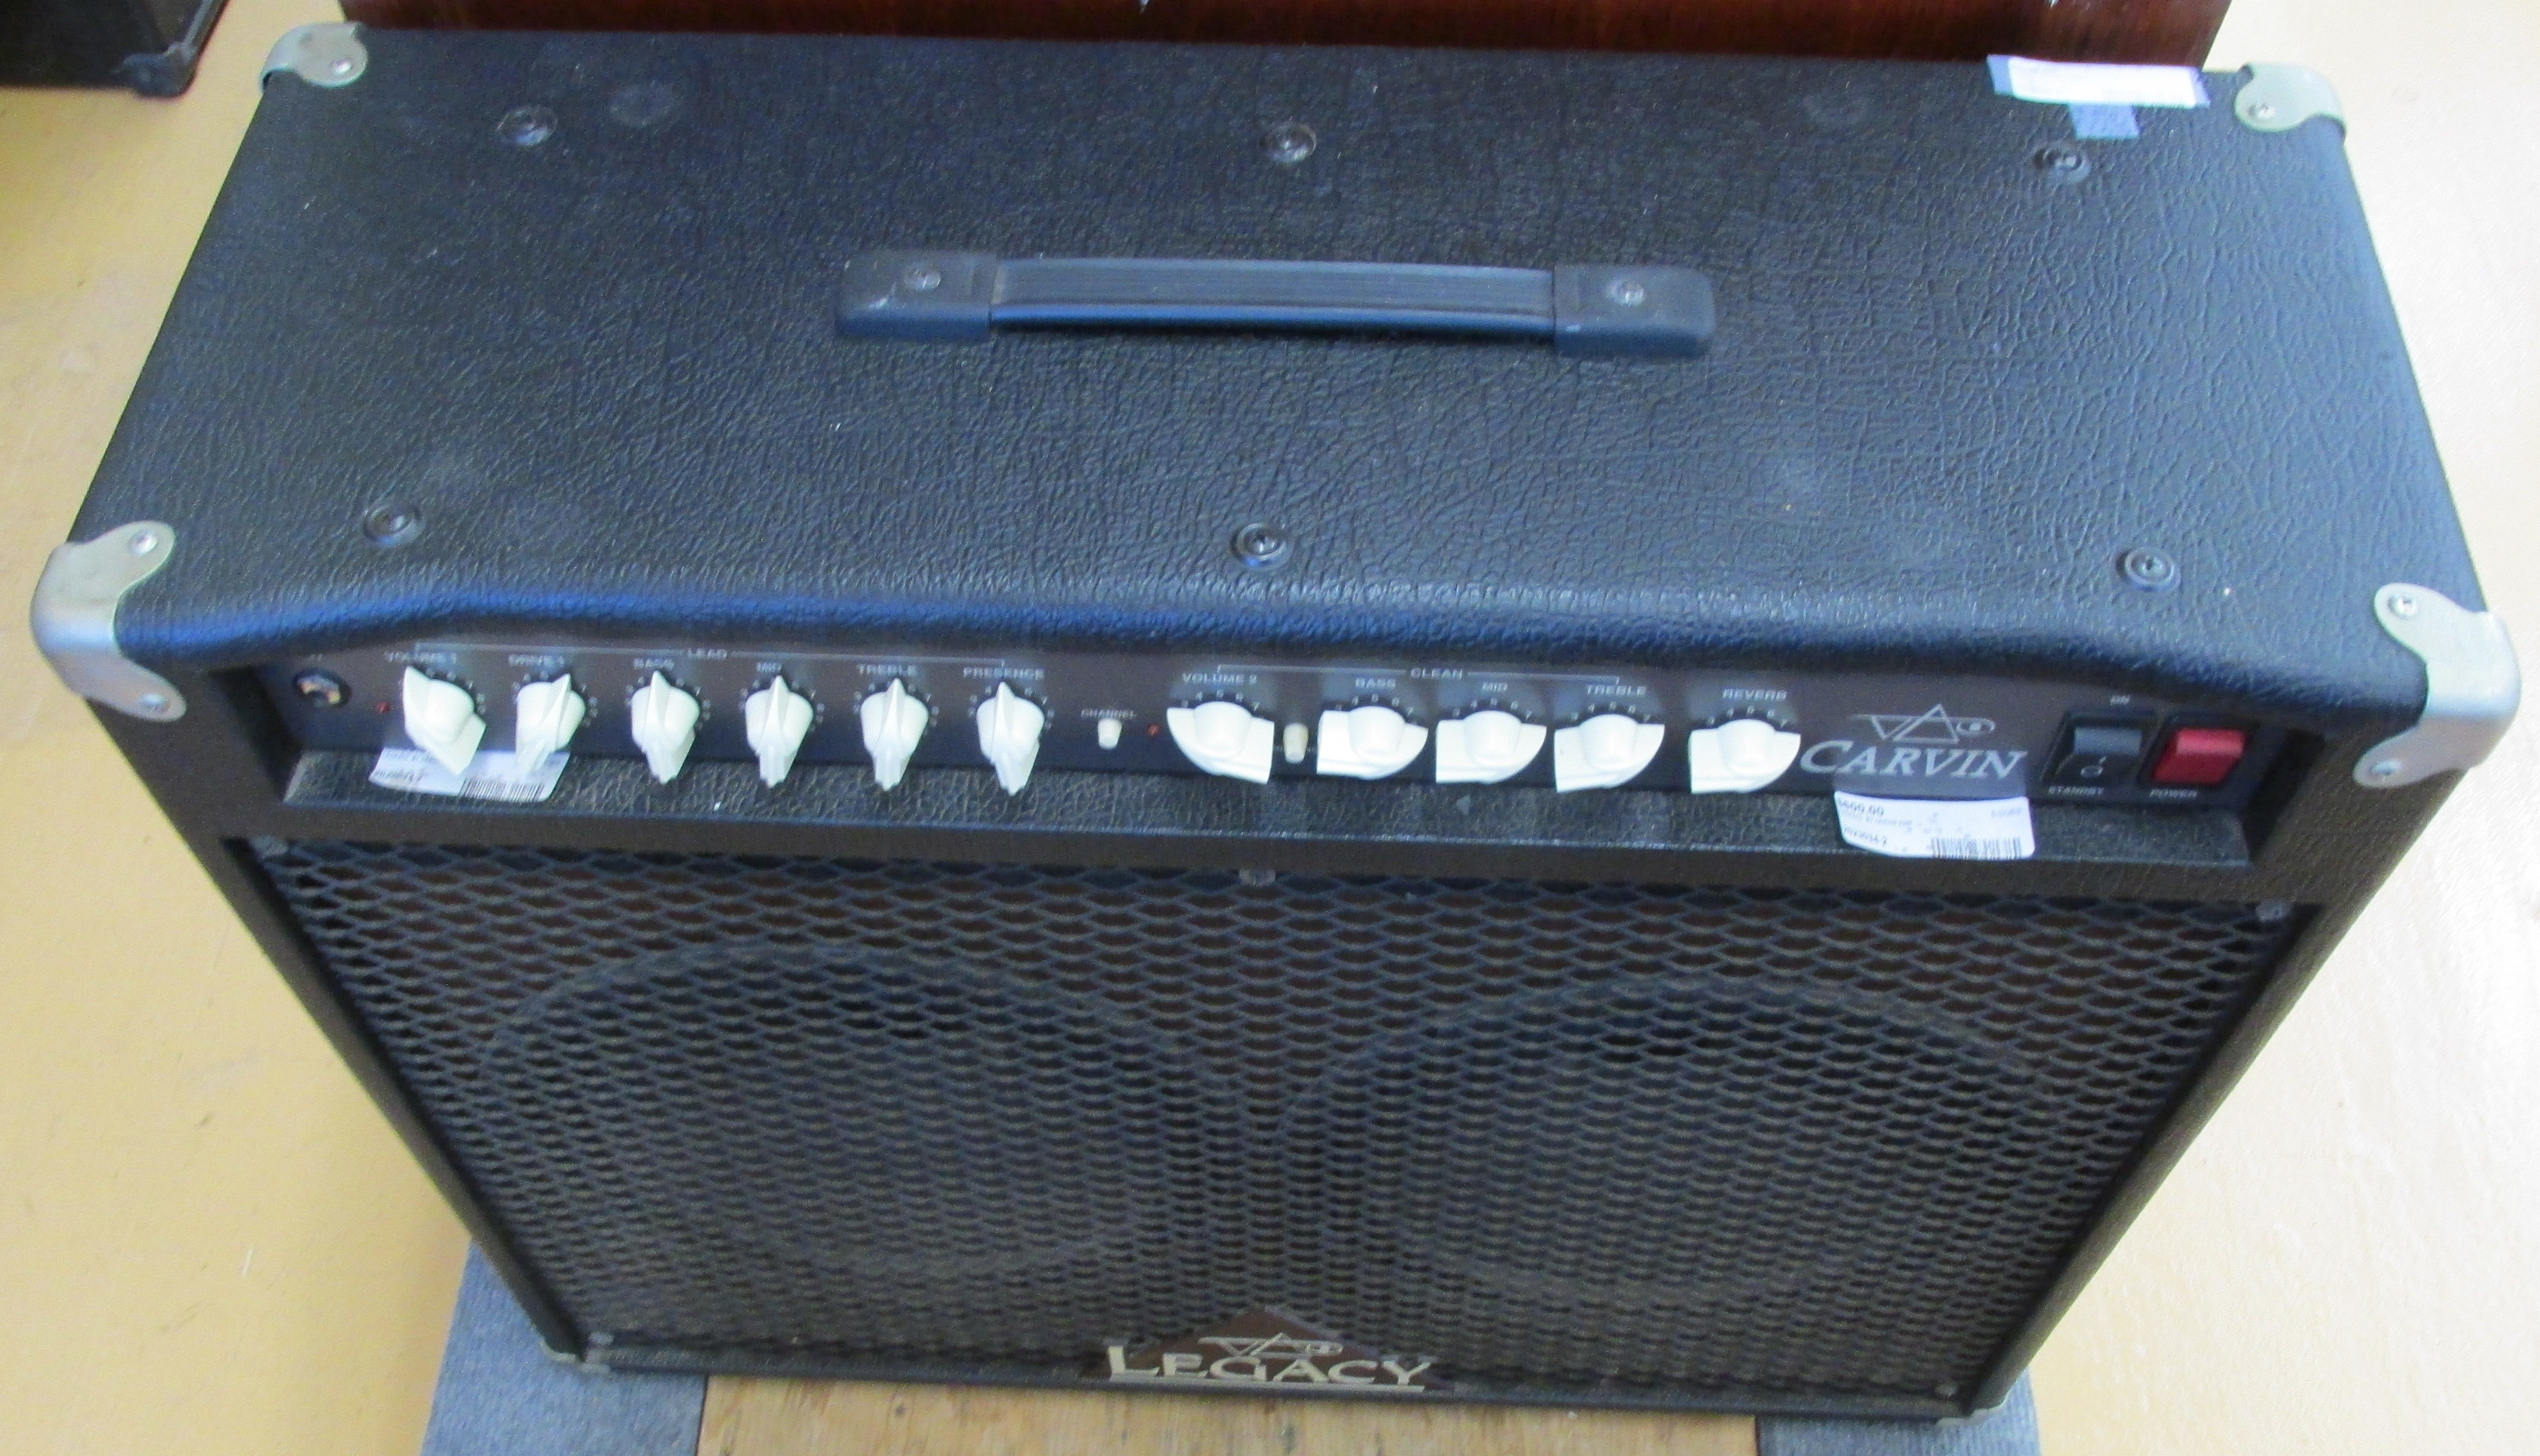 Carvin Legacy VL212 Amplifier  -  **Local Pick Up Only**